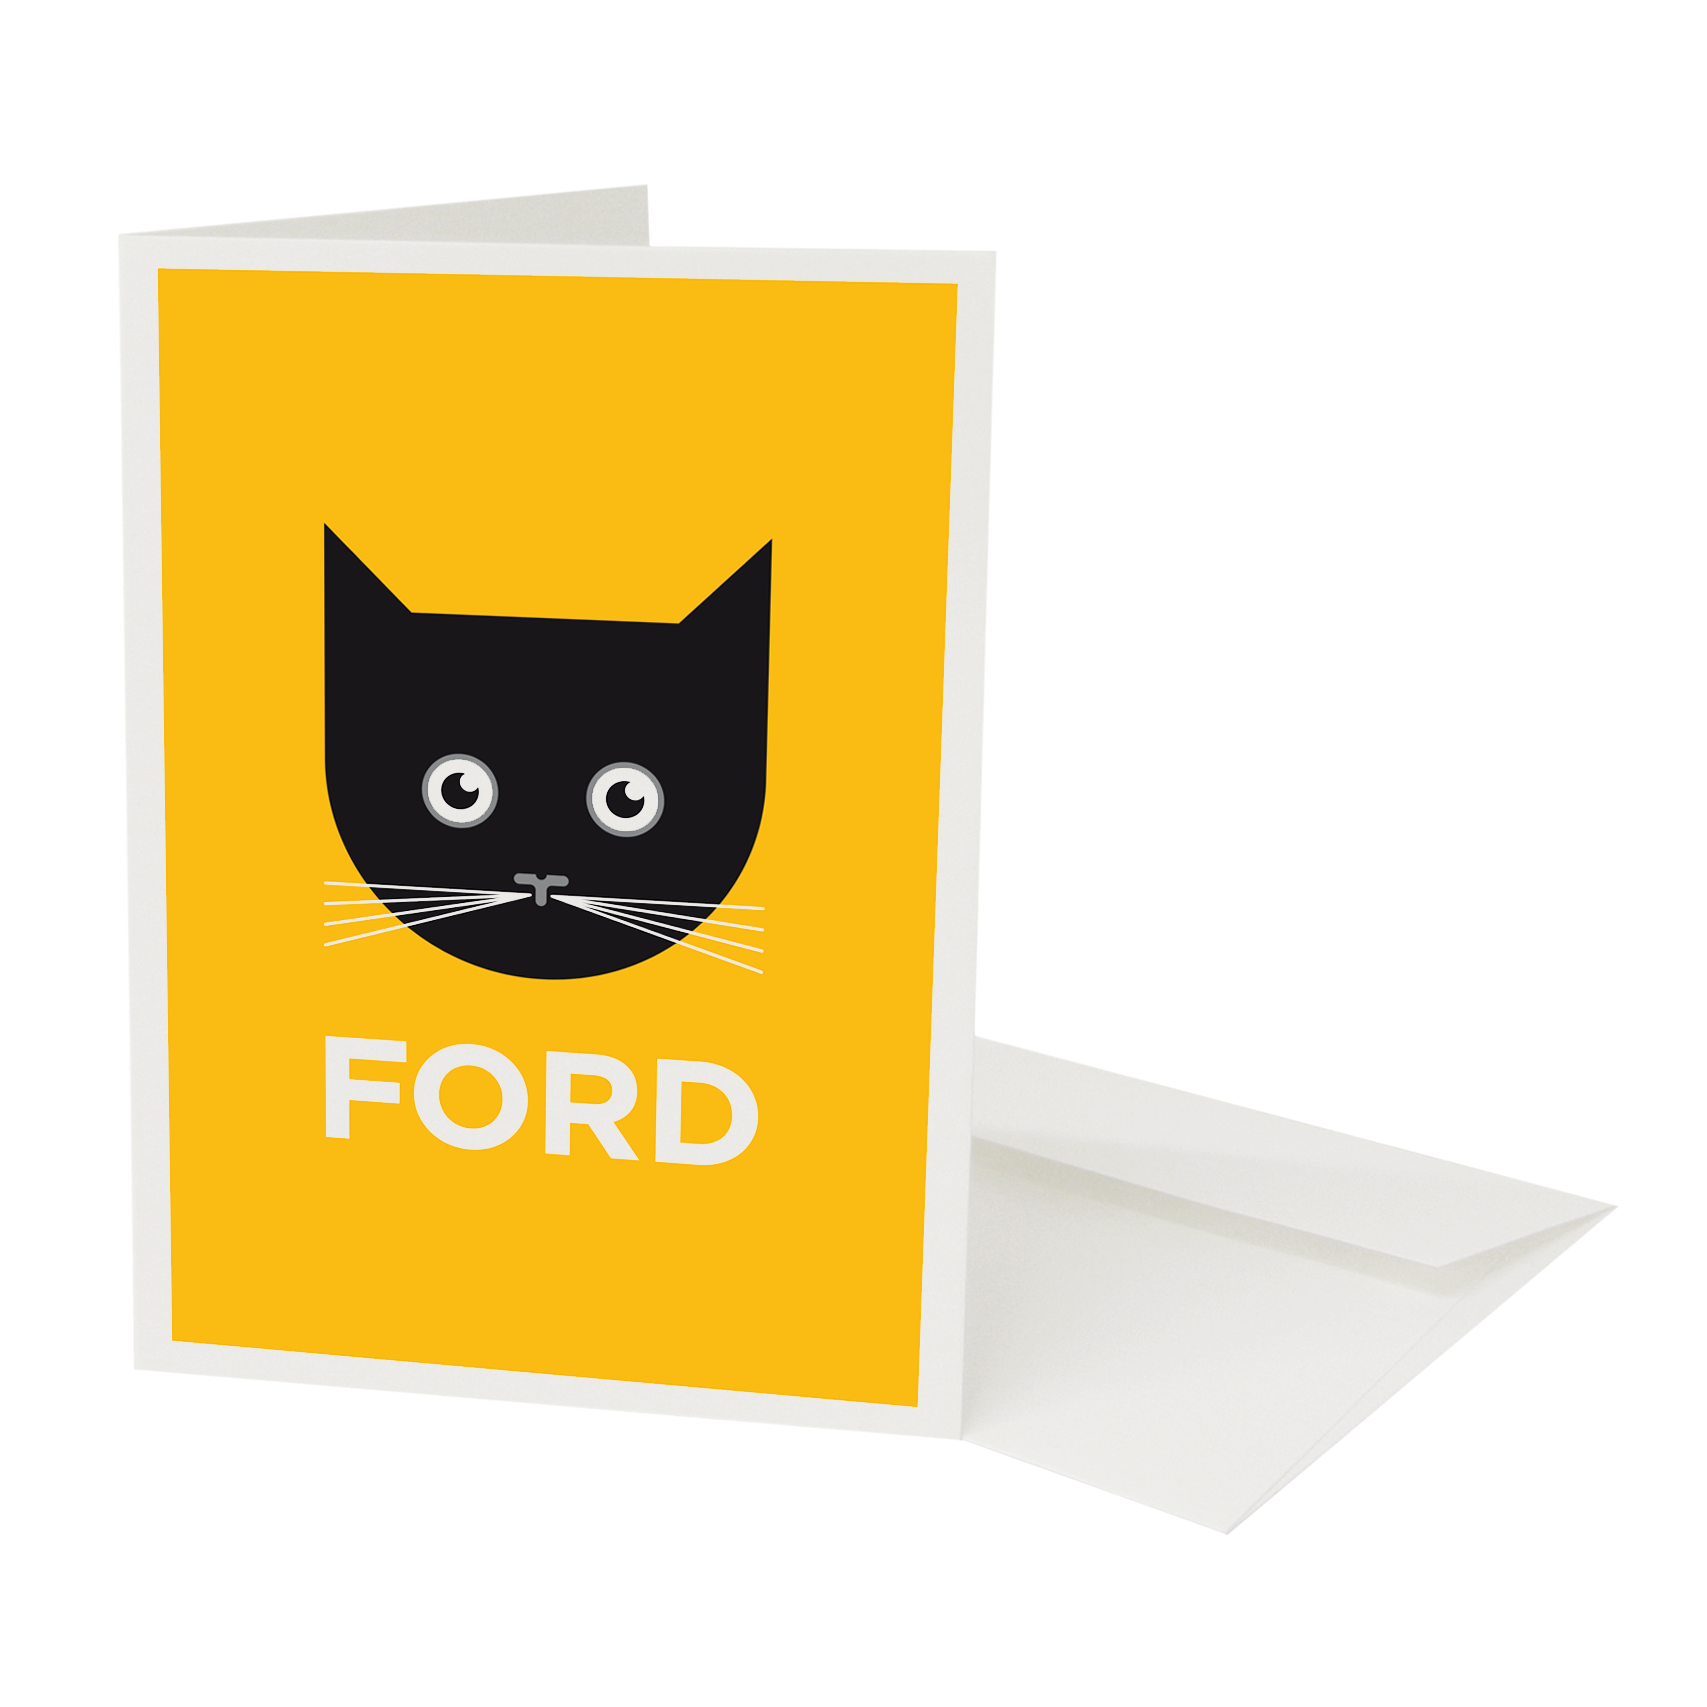 Place in Print Pate Catford Neighbourhood Pun Greetings Card